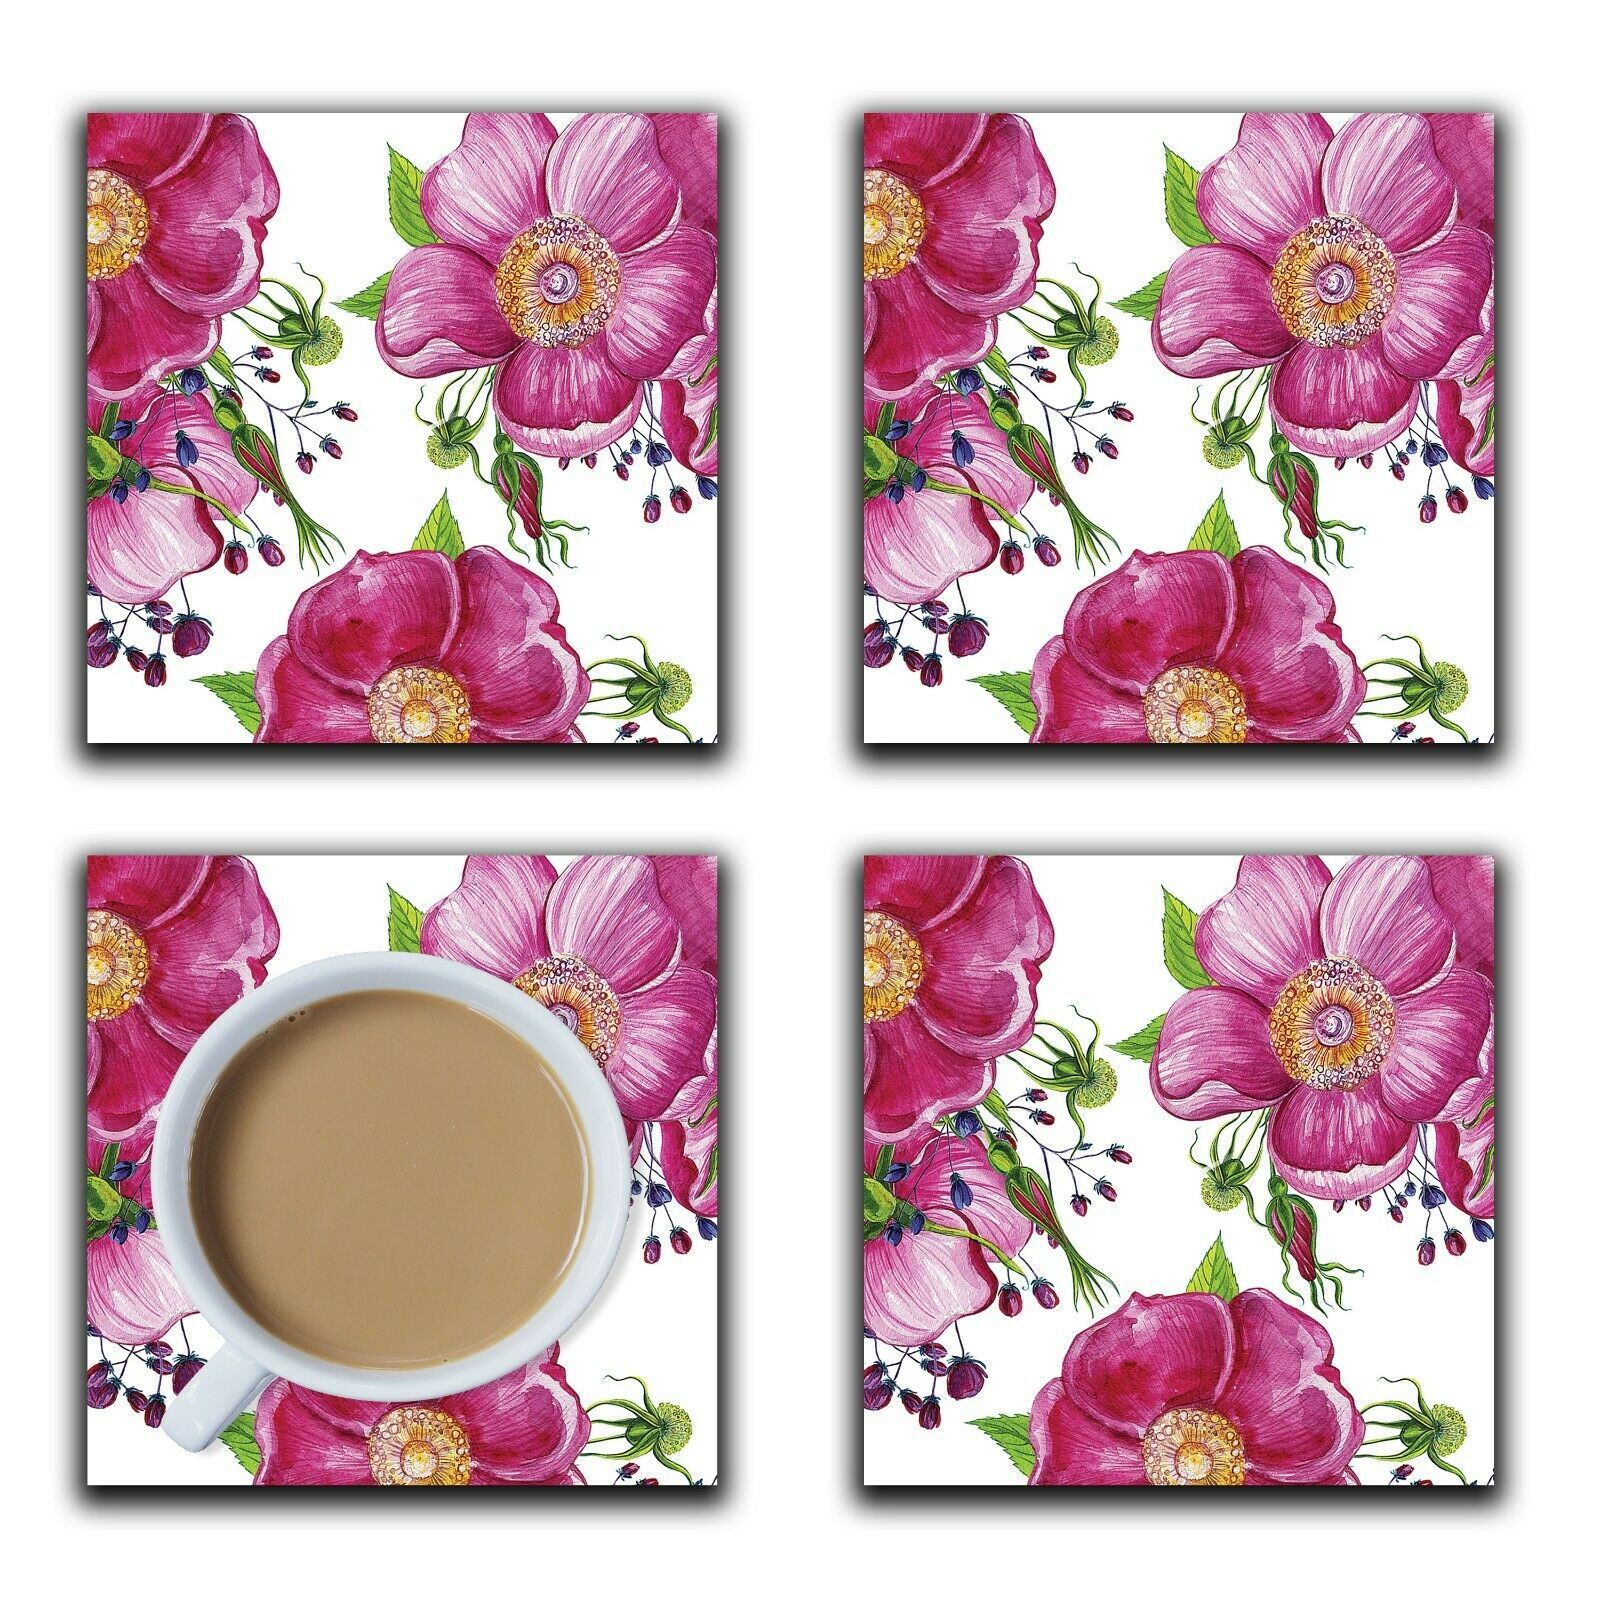 Embossi Printed Pink Wild Roses, wood or ceramic tile, set of 4 Coasters